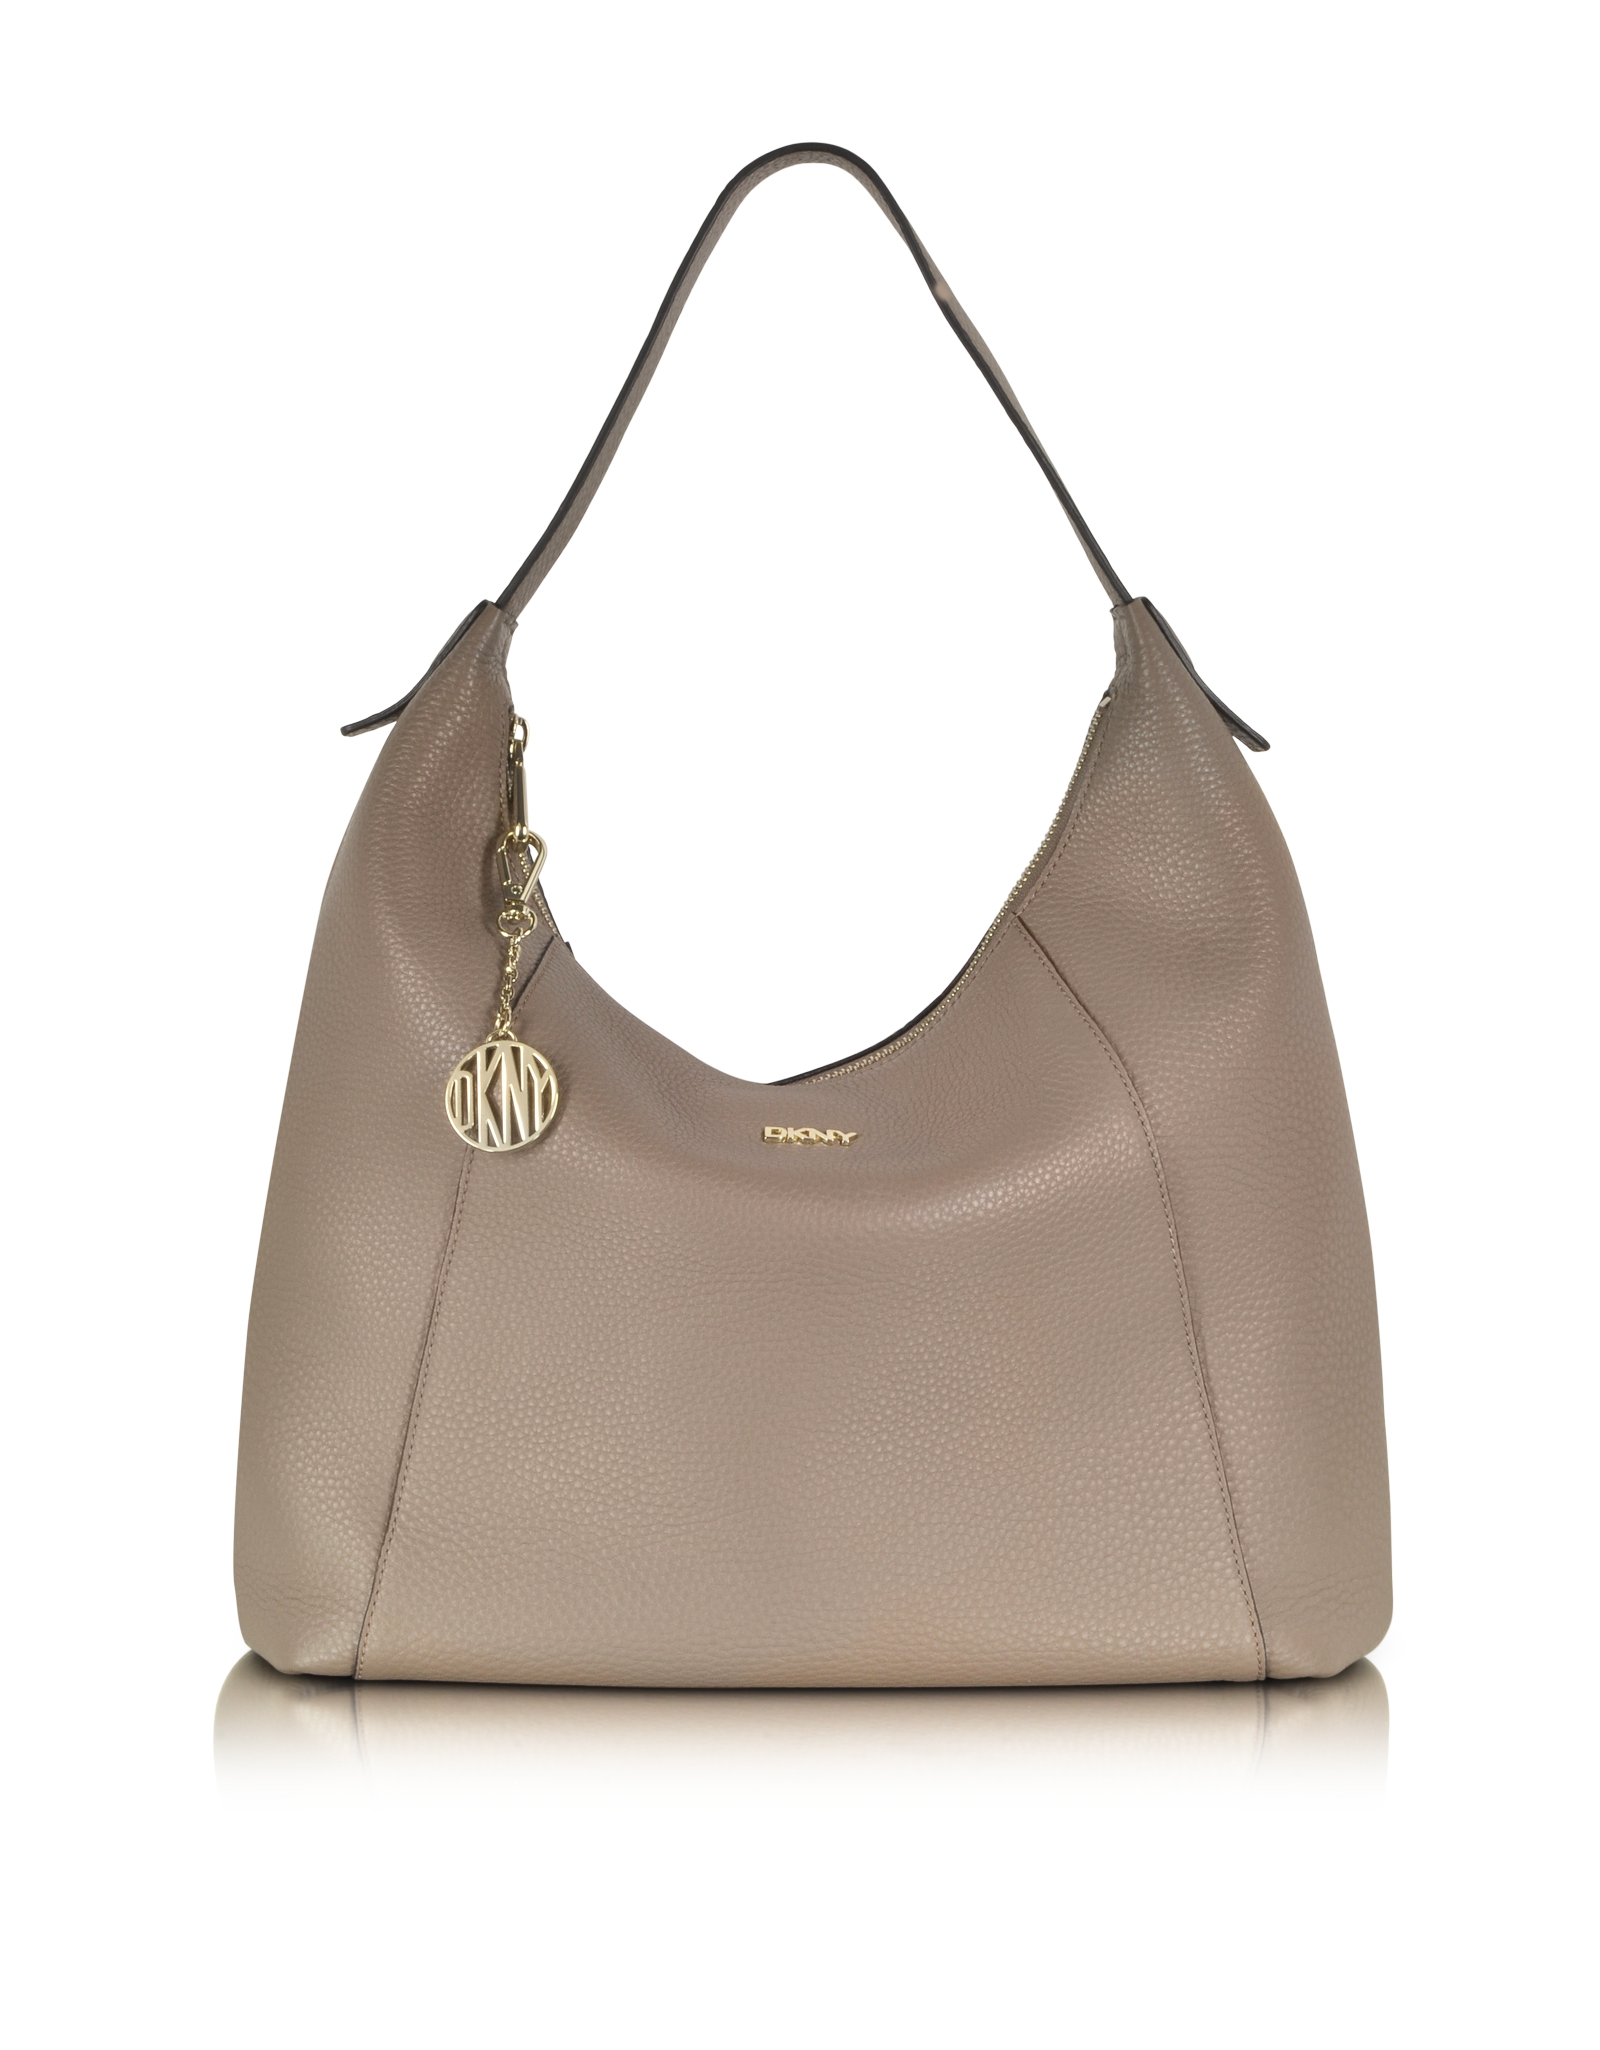 Lyst - DKNY Tribeca Leather Large Hobo Bag in Natural 155c4dfee6493